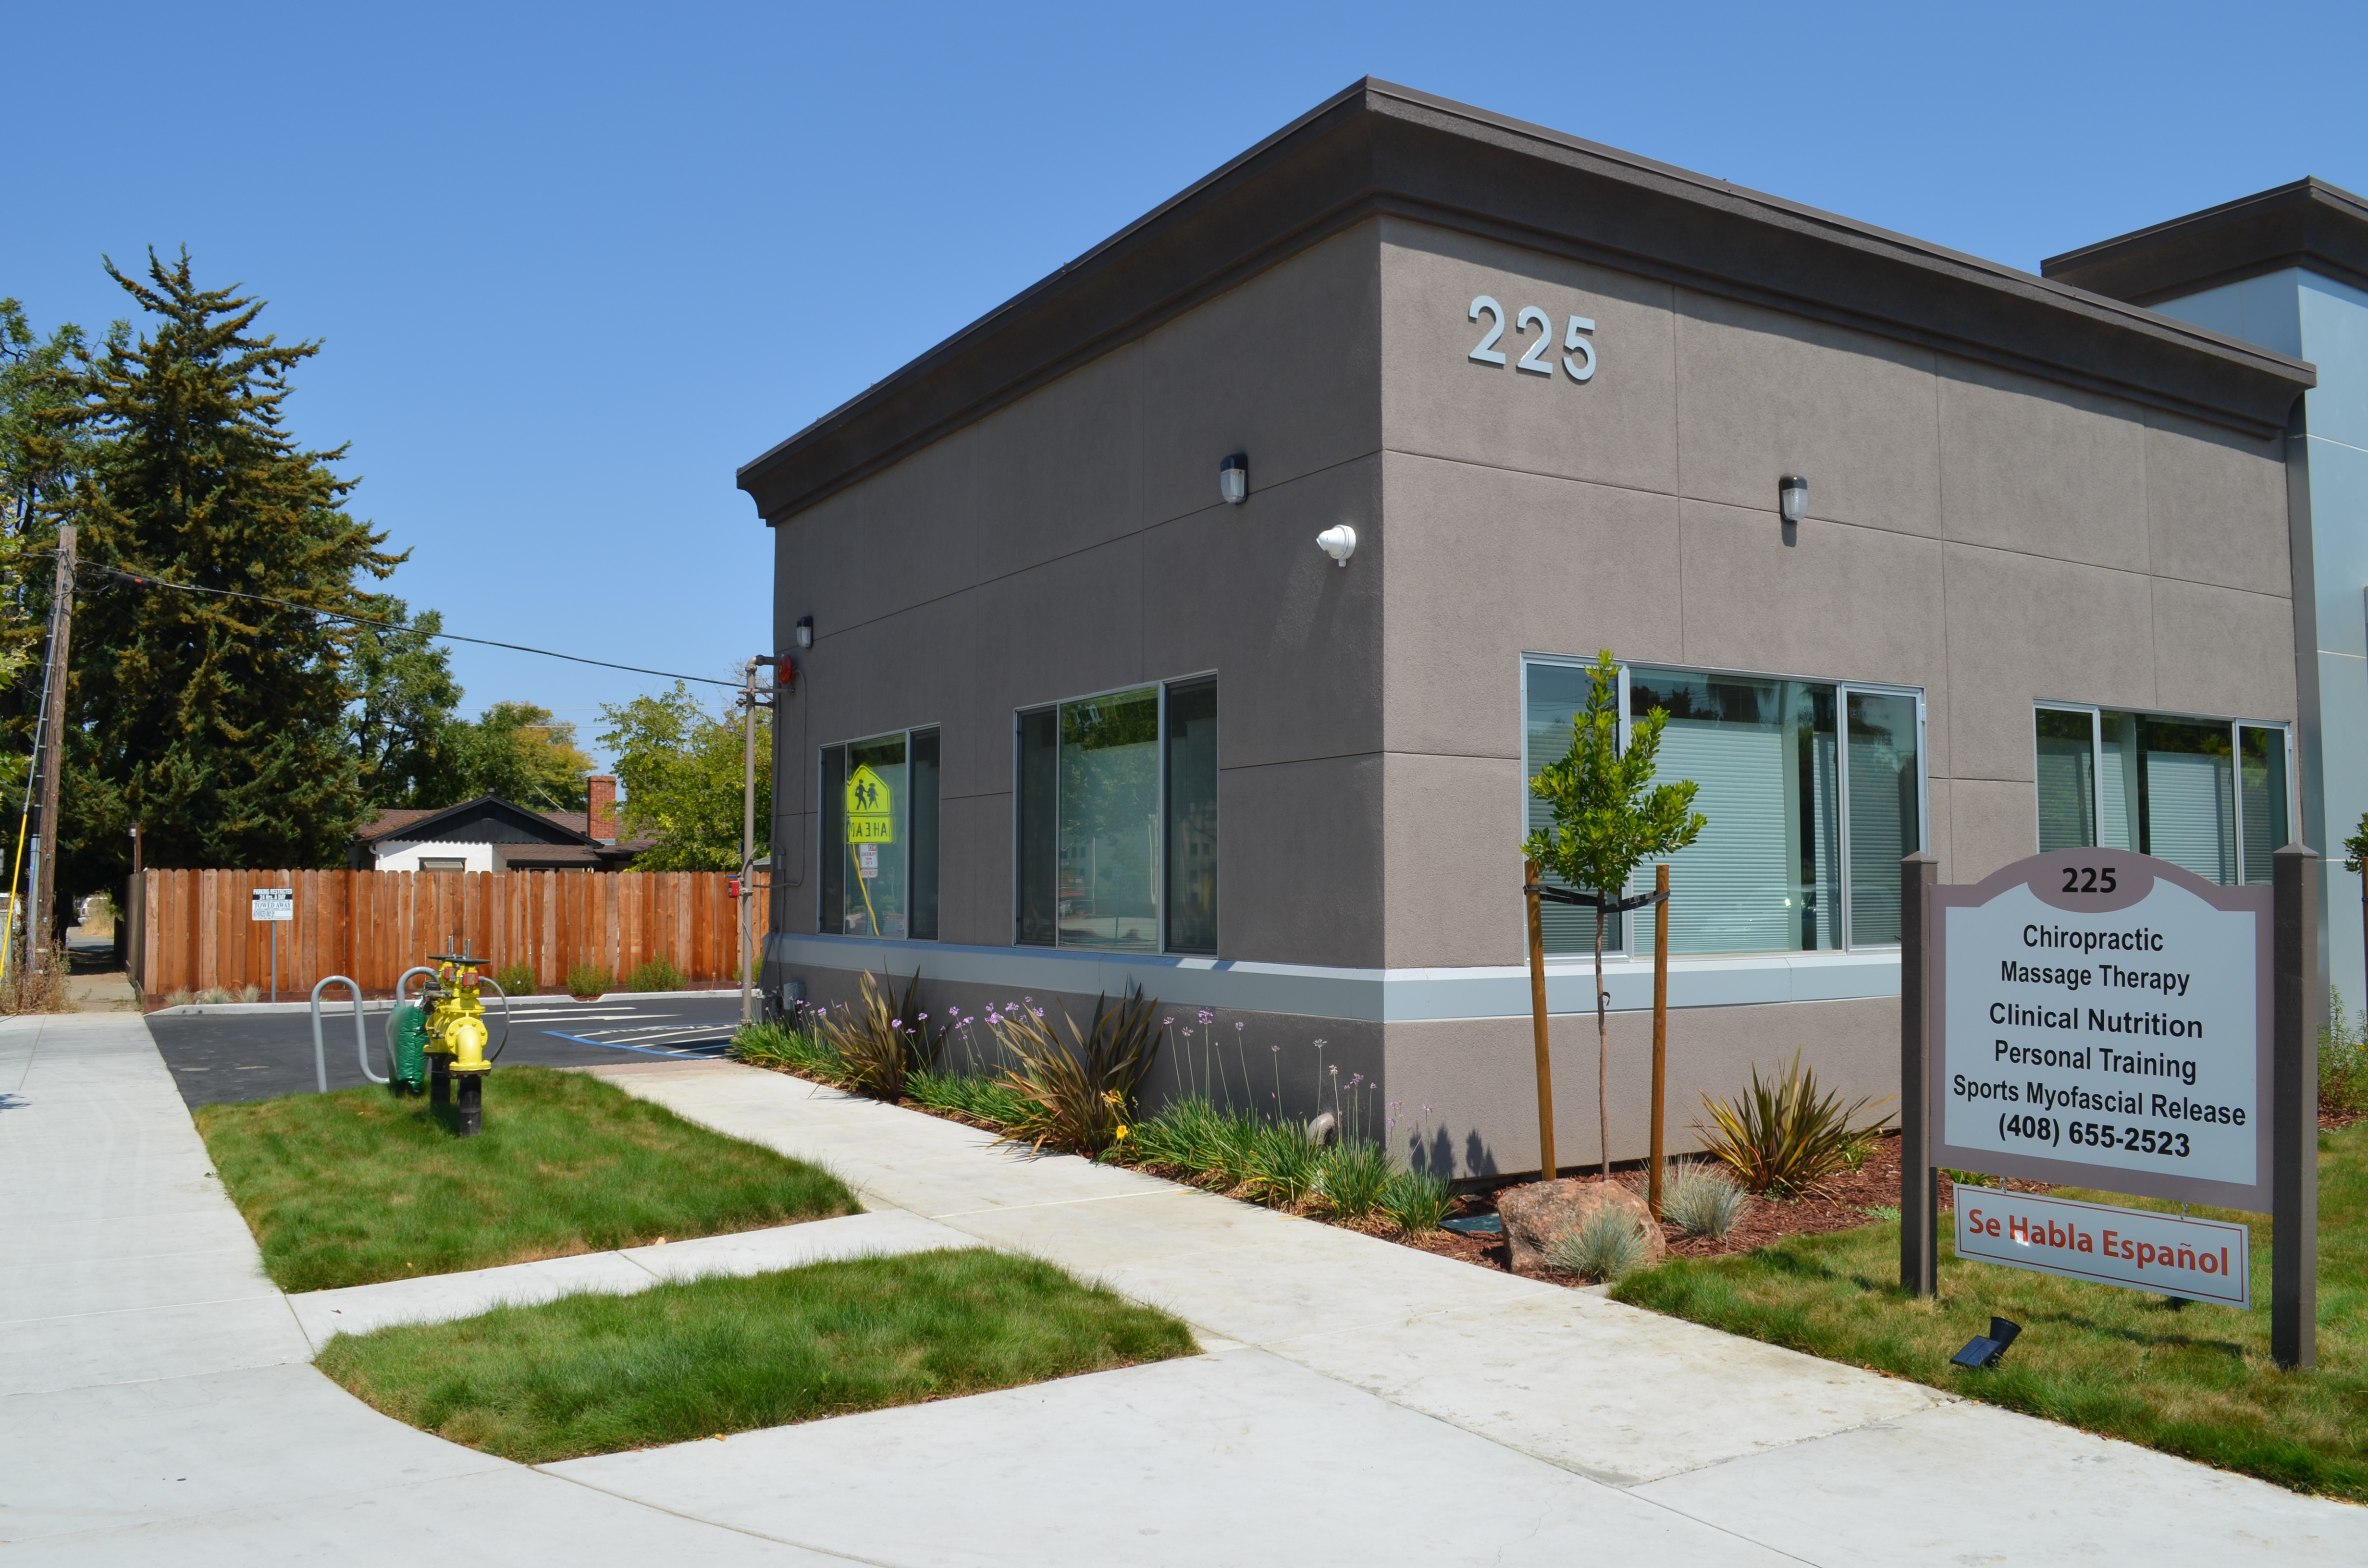 Tootoonchi Chiropractic Inc.   Chiropractor In CAMPBELL, CA United States  :: Pictures Tootoonchi Chiropractic Inc.   Chiropractor In CAMPBELL, CA  United ...